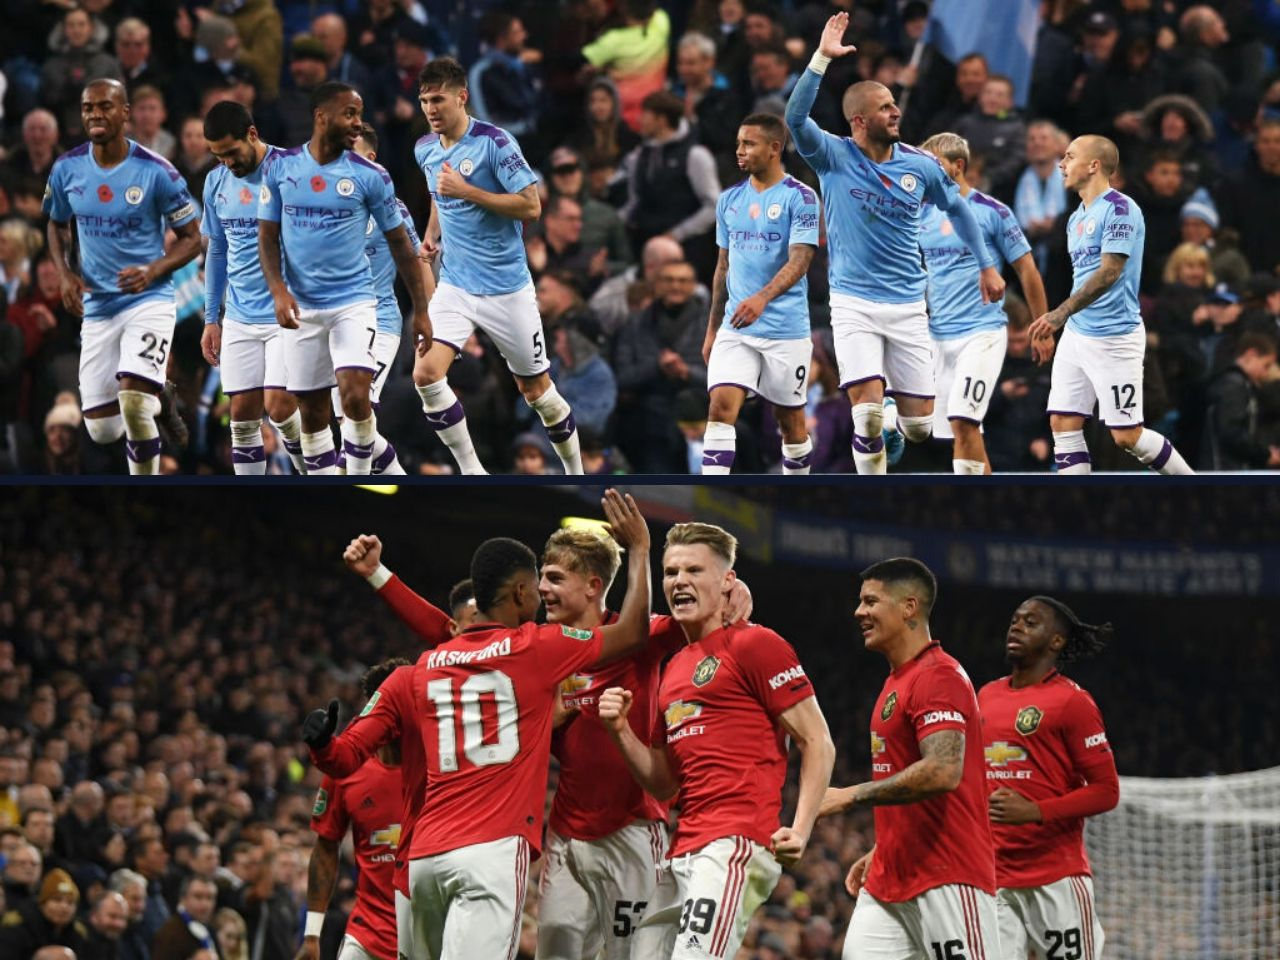 Manchester United, Manchester City